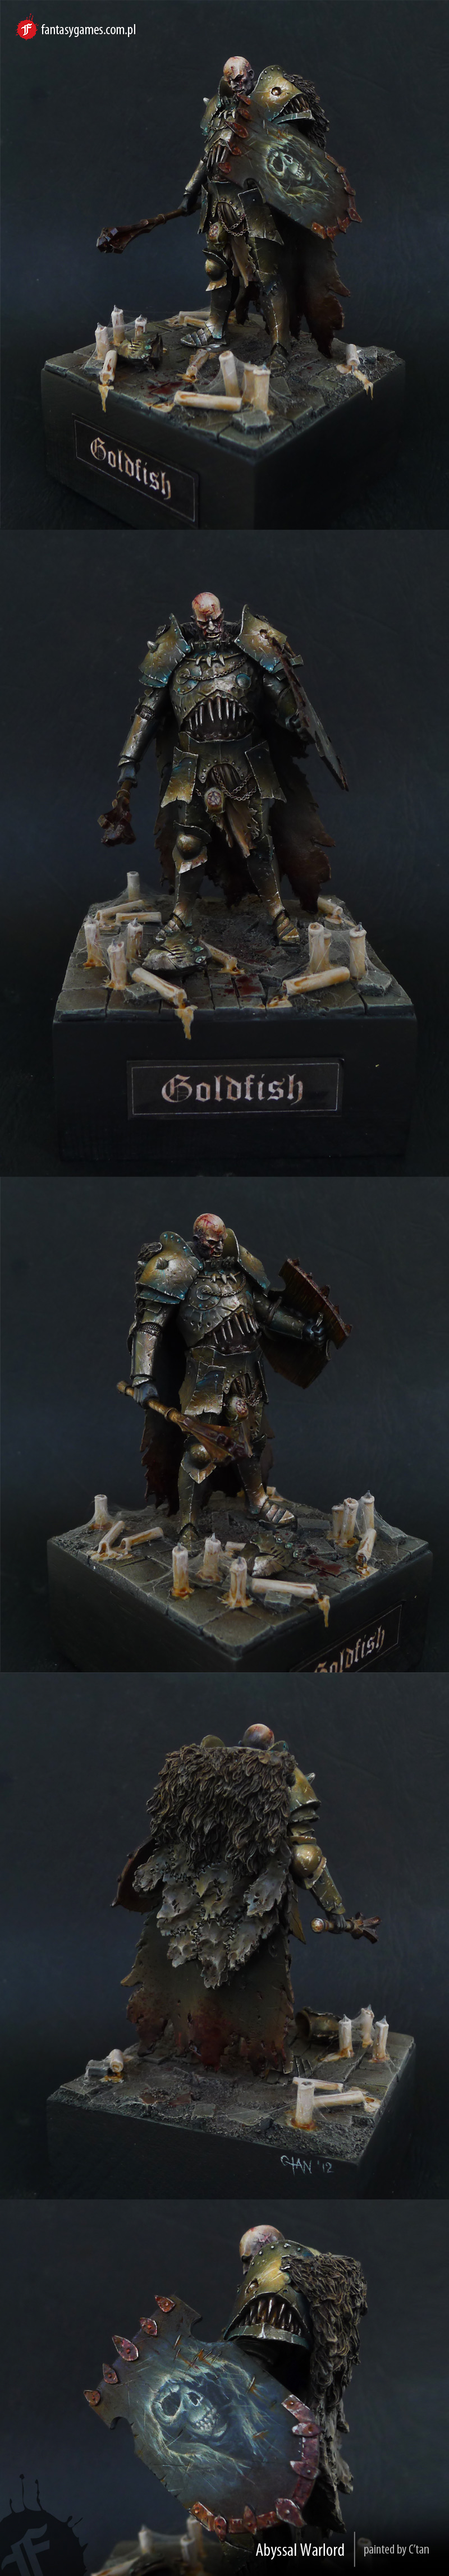 Abyssal Warlord (GOLD at Hussar 2012)